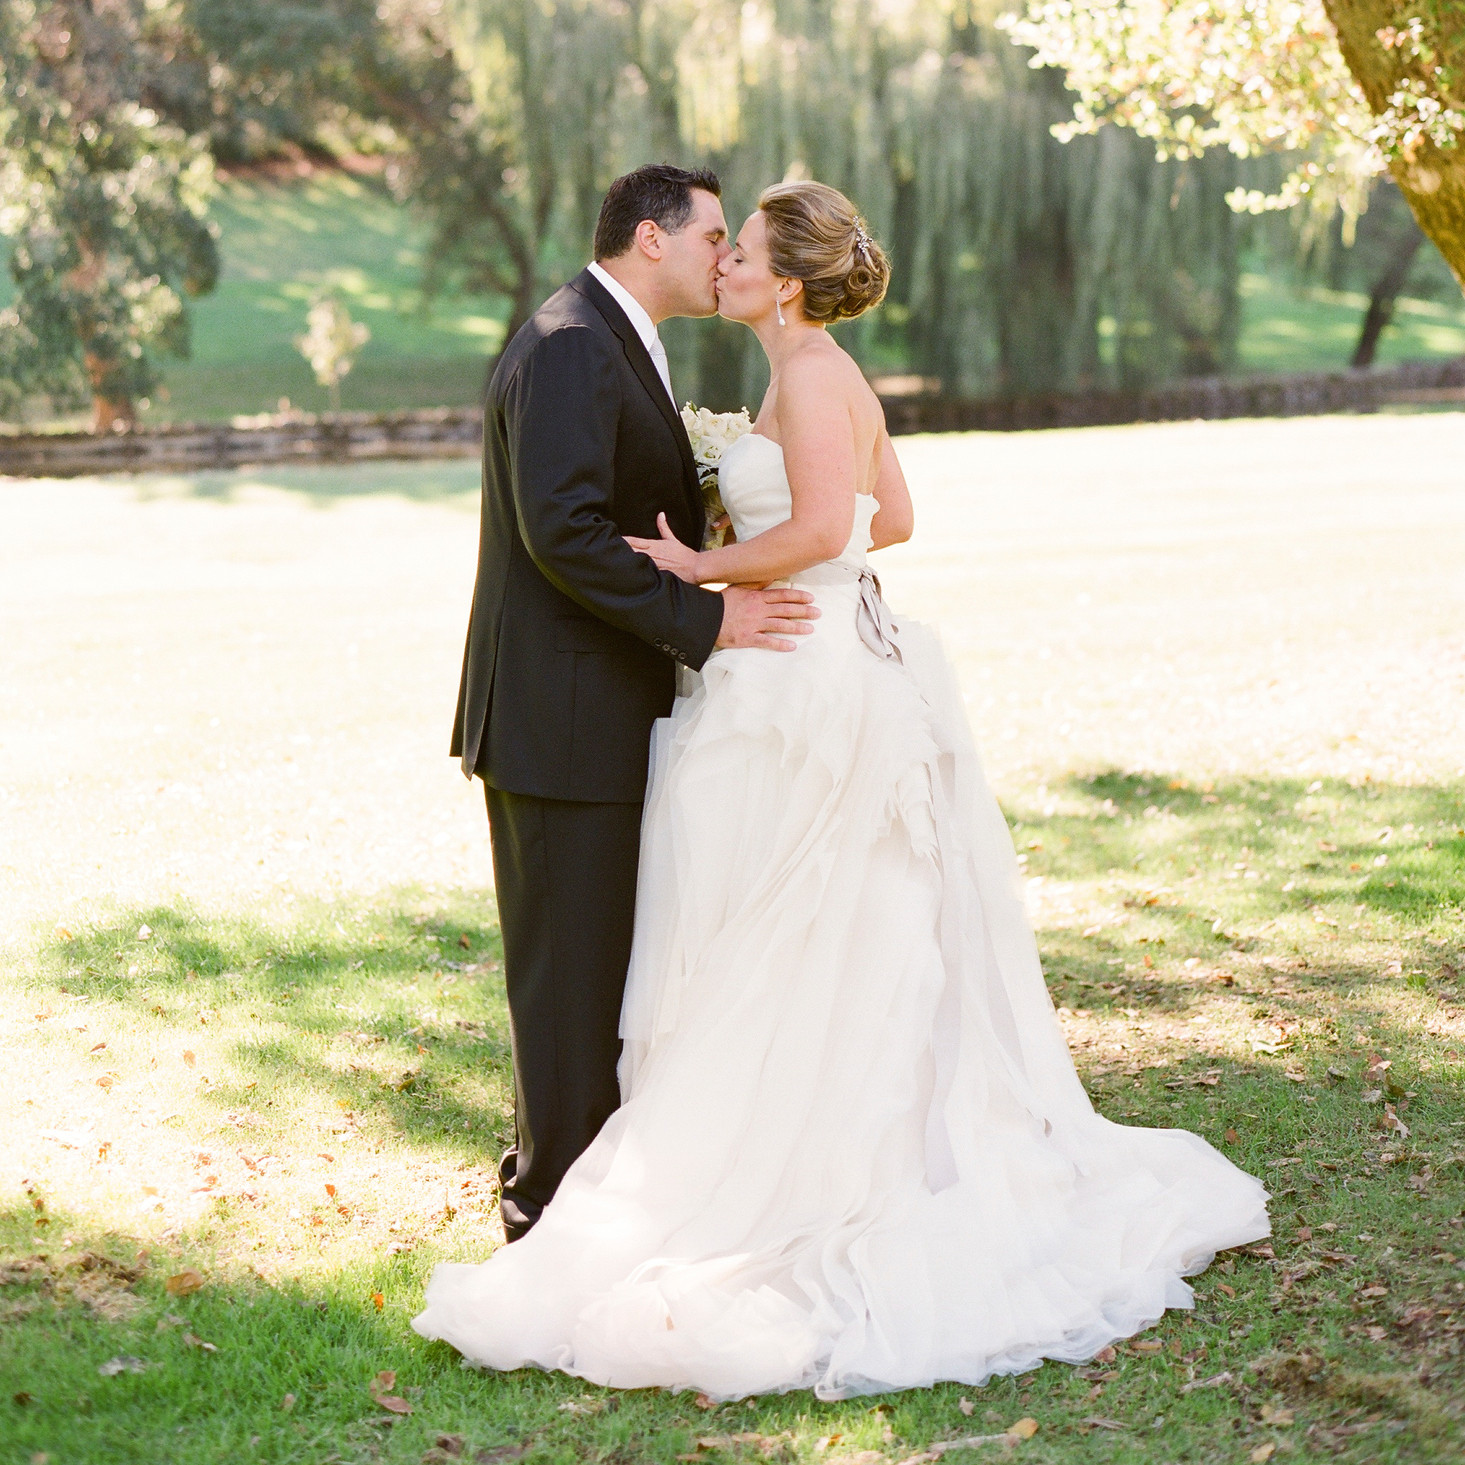 A Formal Outdoor Destination Wedding in Napa, California | Martha ...